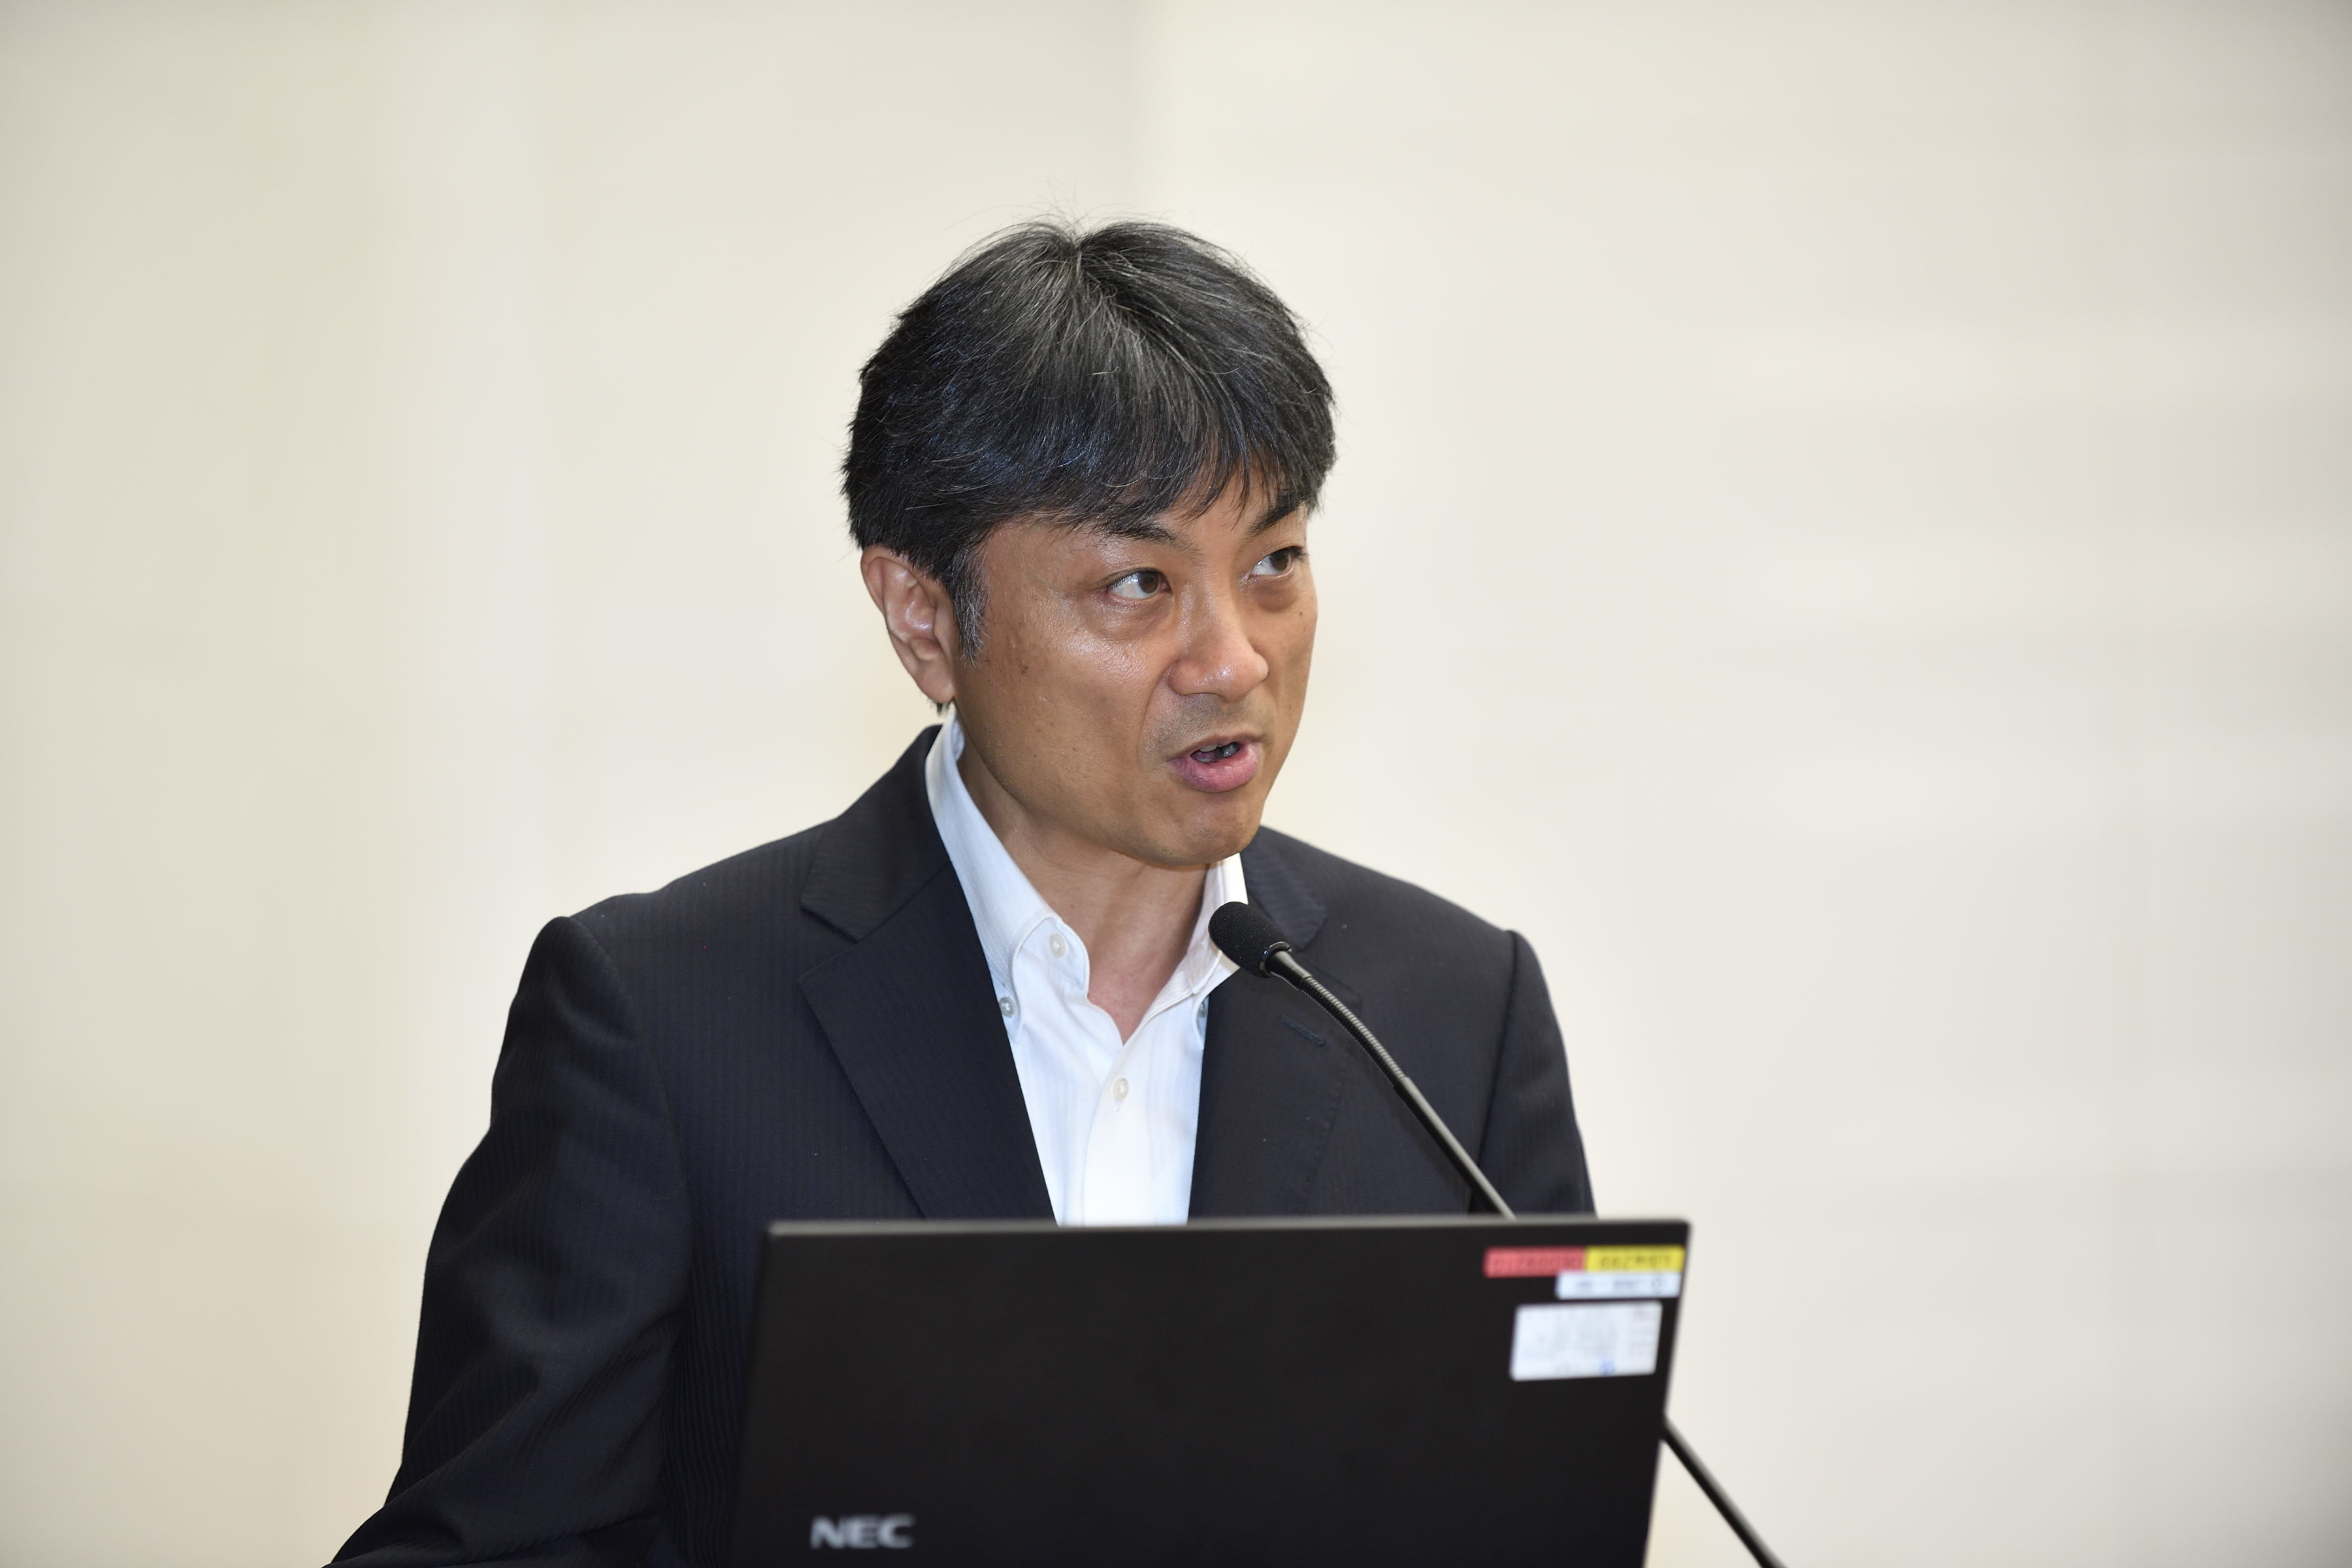 Picture: Seiichi Shimizu, Director-General of the Financial Markets Department, Bank of Japan